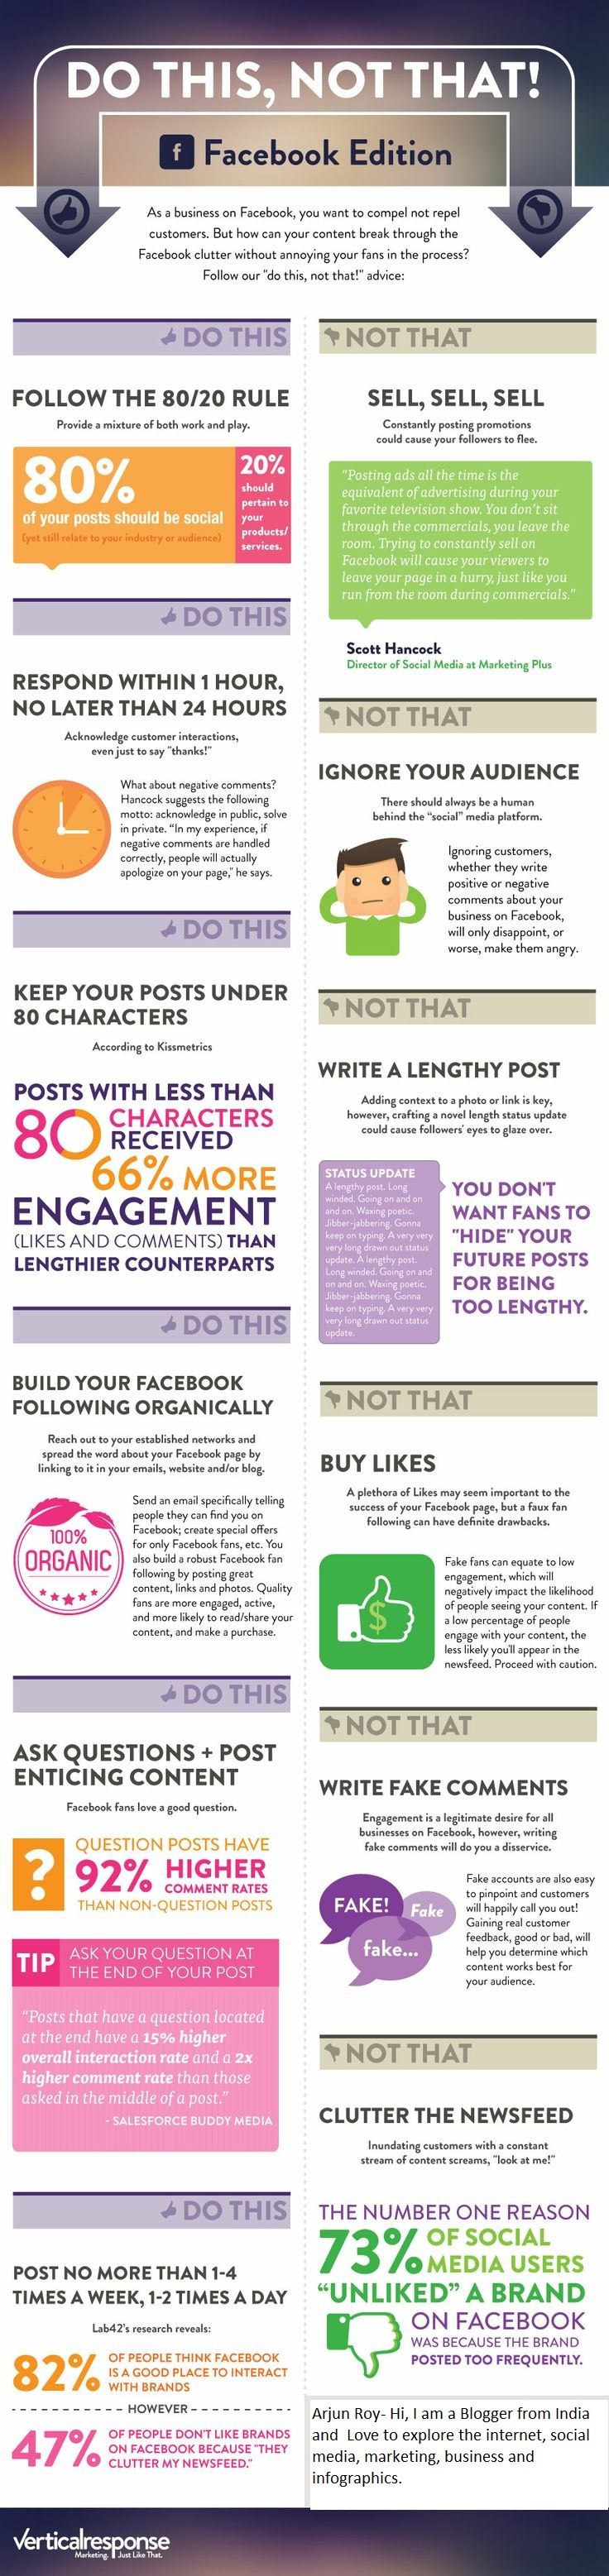 How Your Content Can Break Through The Facebook Clutter Without Annoying Your Fans? - Image 1